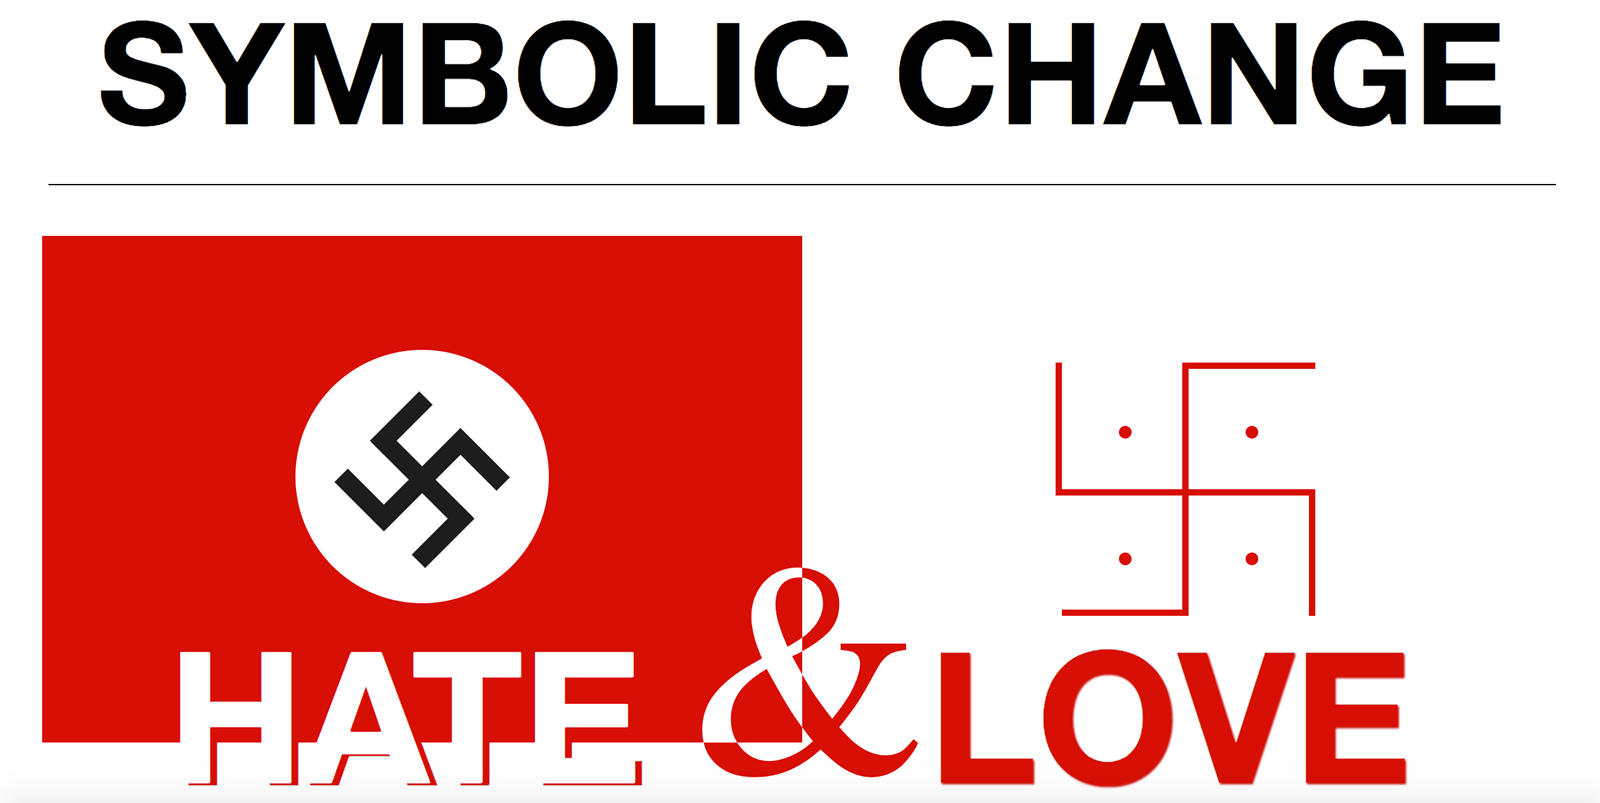 Symbolic change love vs hate surf the dream the book was talking about the different meanings that symbols can take on in different cultures buycottarizona Images